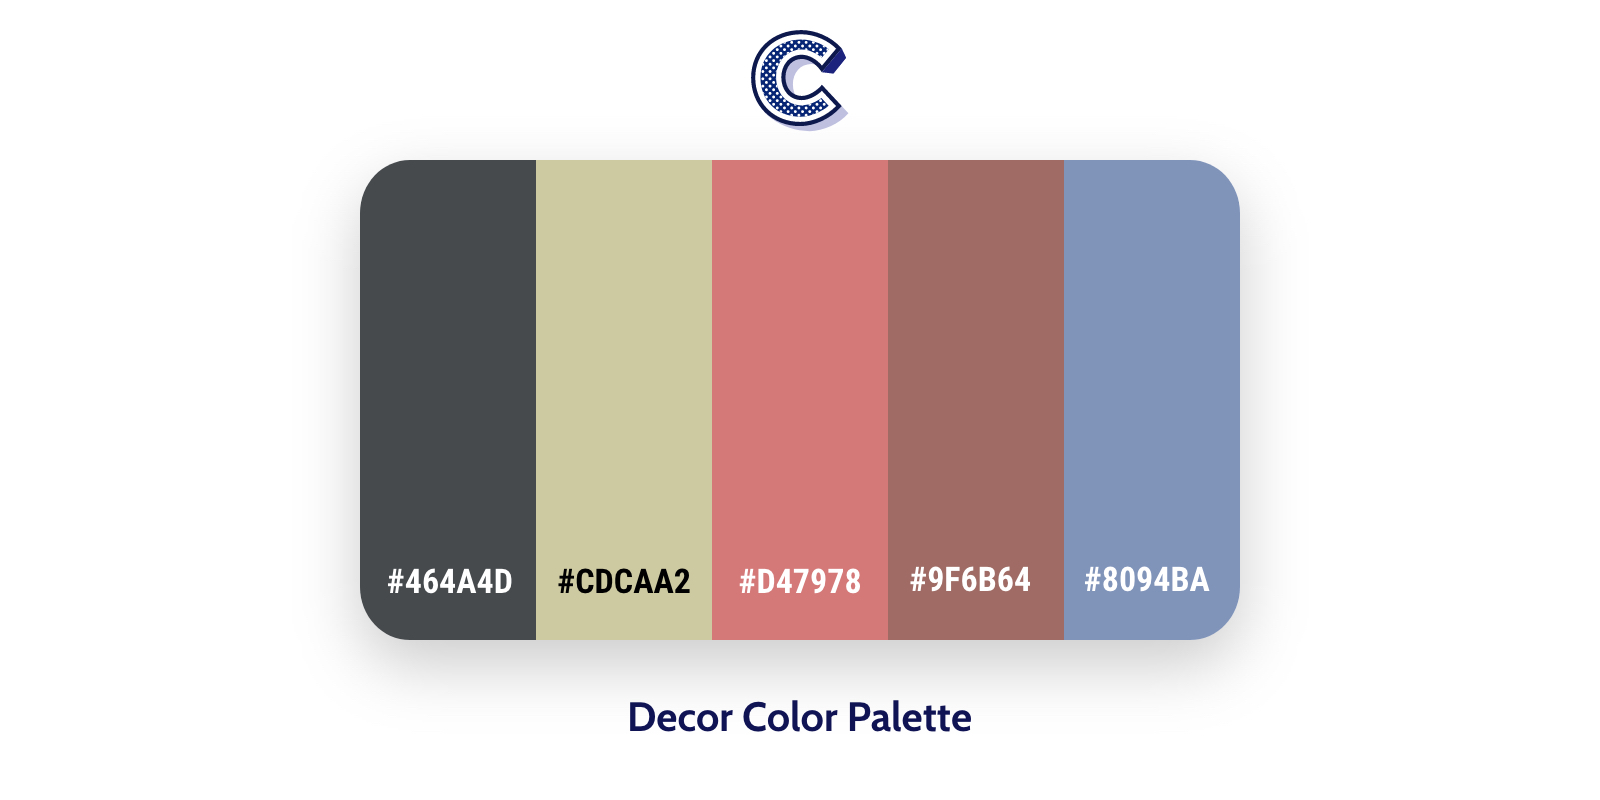 the featured image of decor color palette